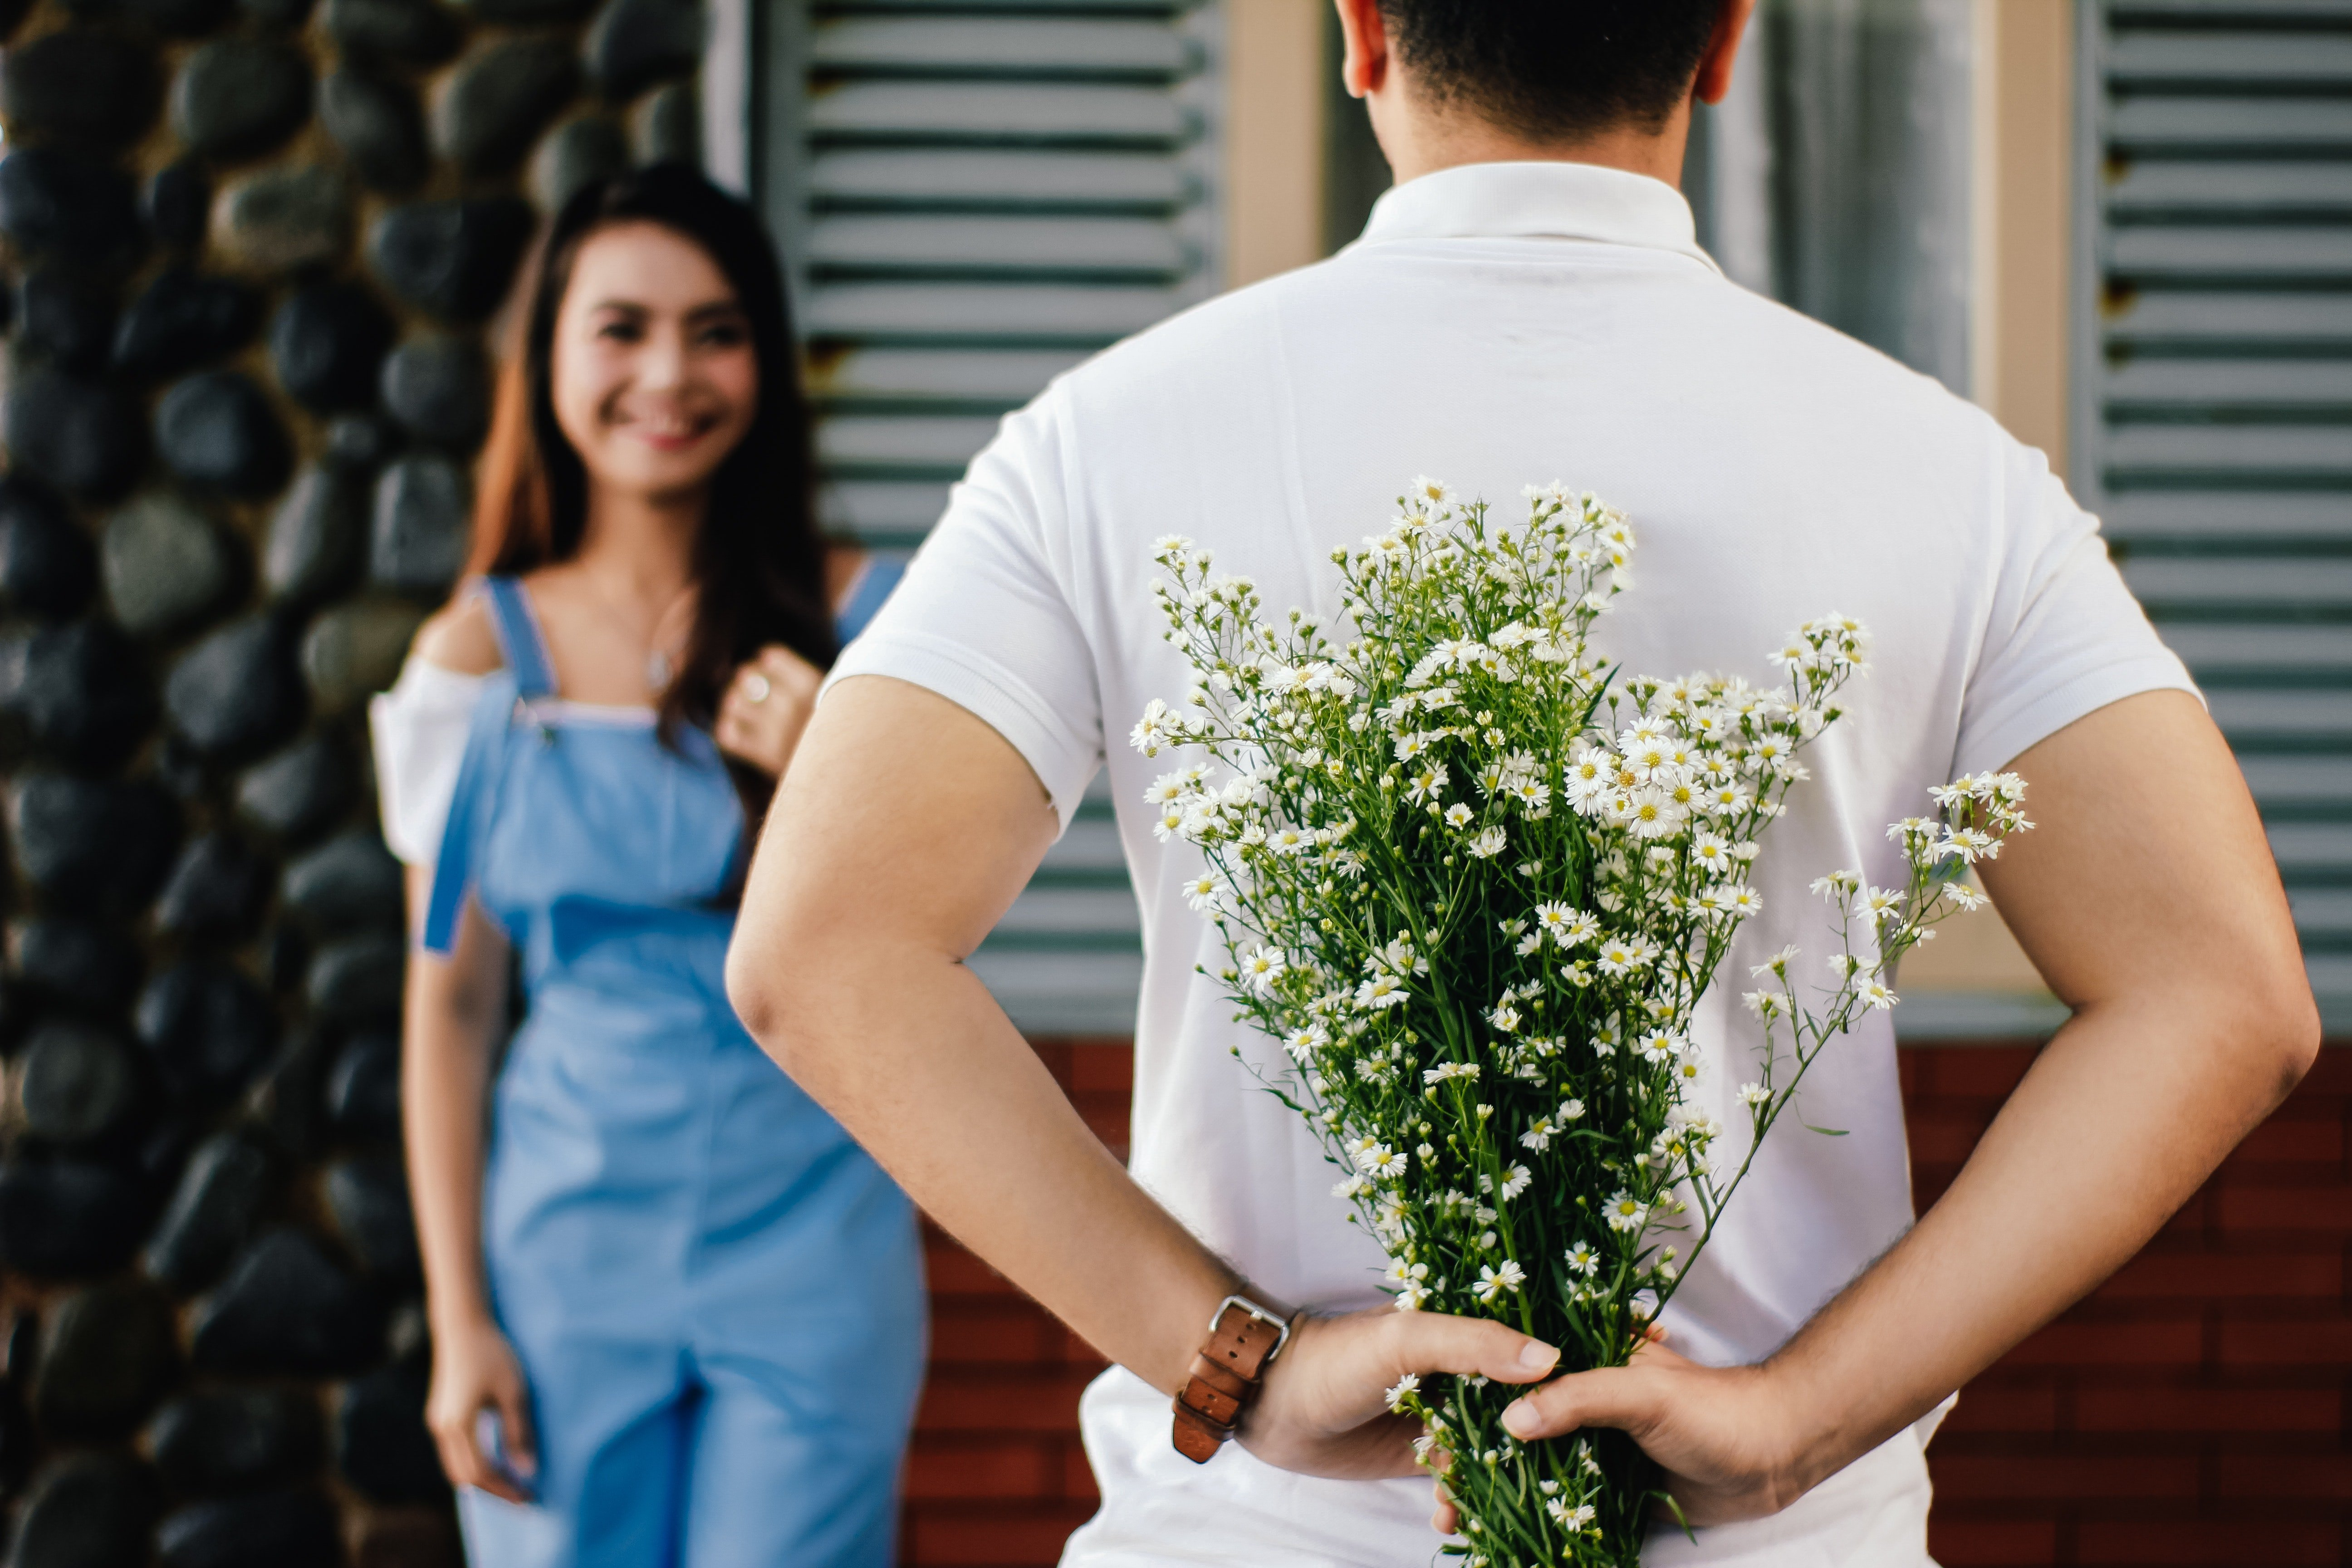 The man wanted to make his wife feel special on her birthday.   Photo: Pexels